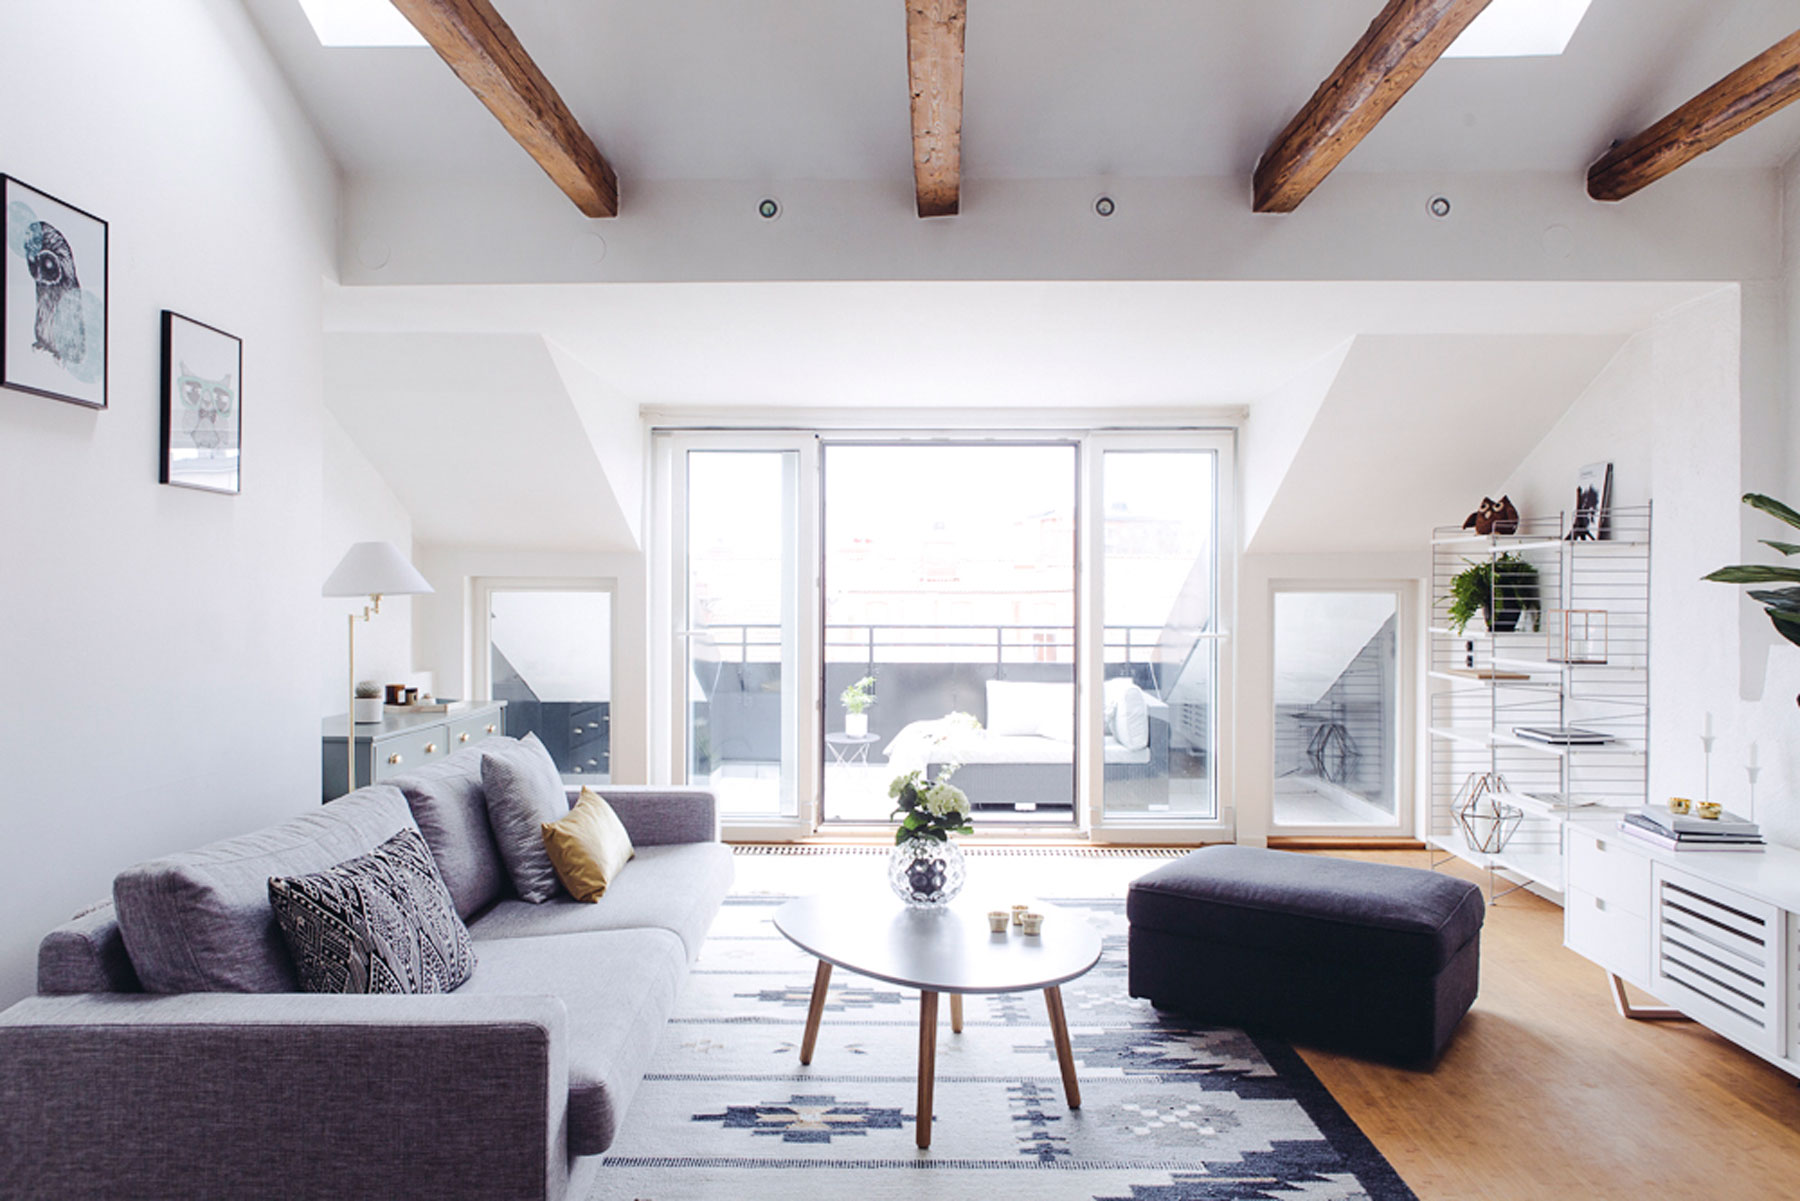 Minimalist interior design - An expert style guide to ...